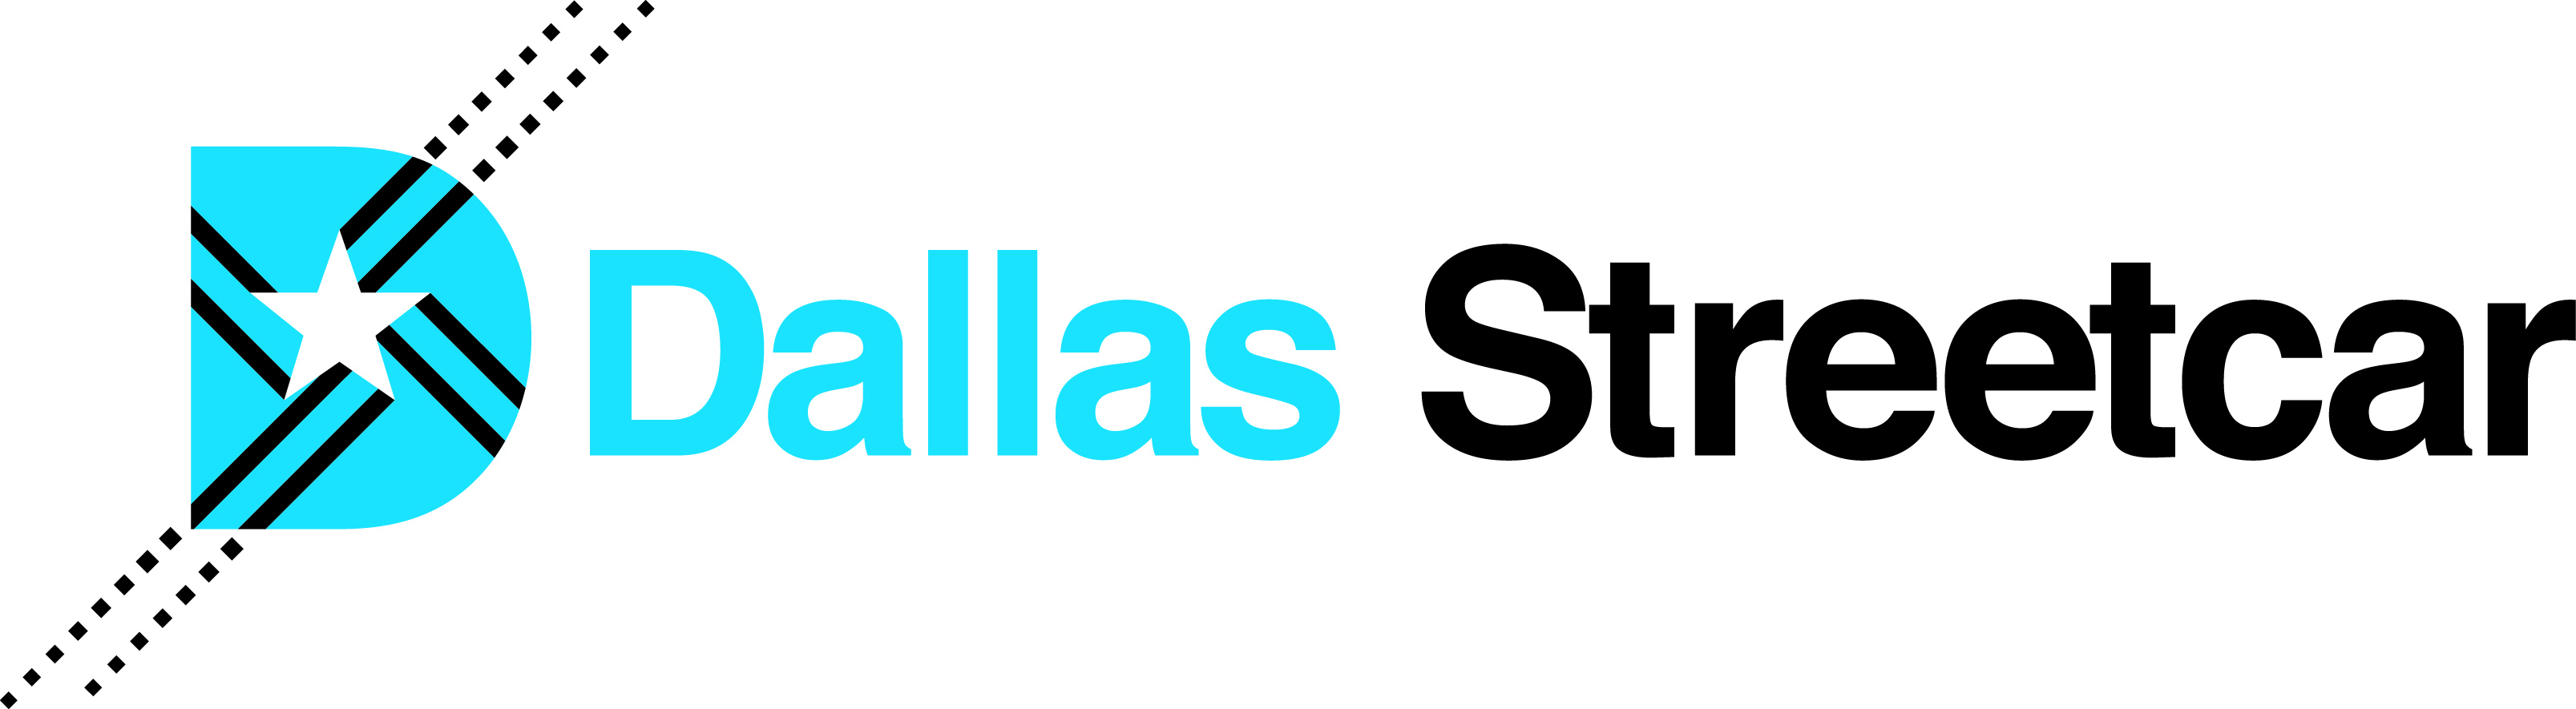 The official logo of Dallas Streetcar